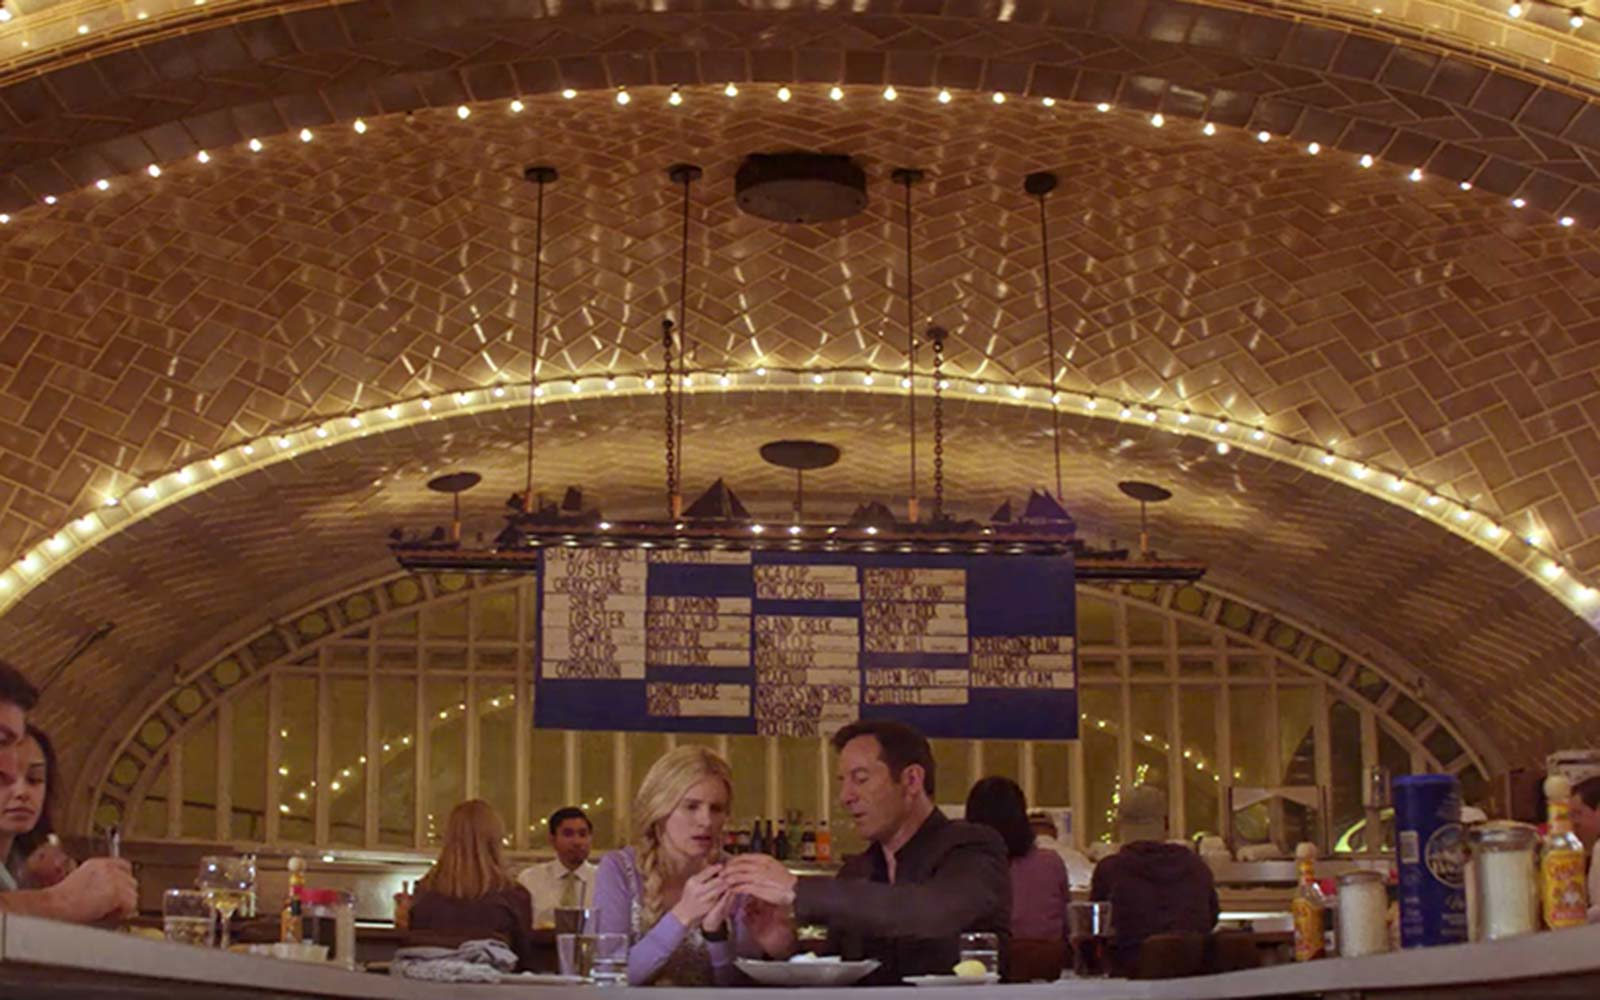 Netflix Food Spots The OA Grand Central Oyster Bar